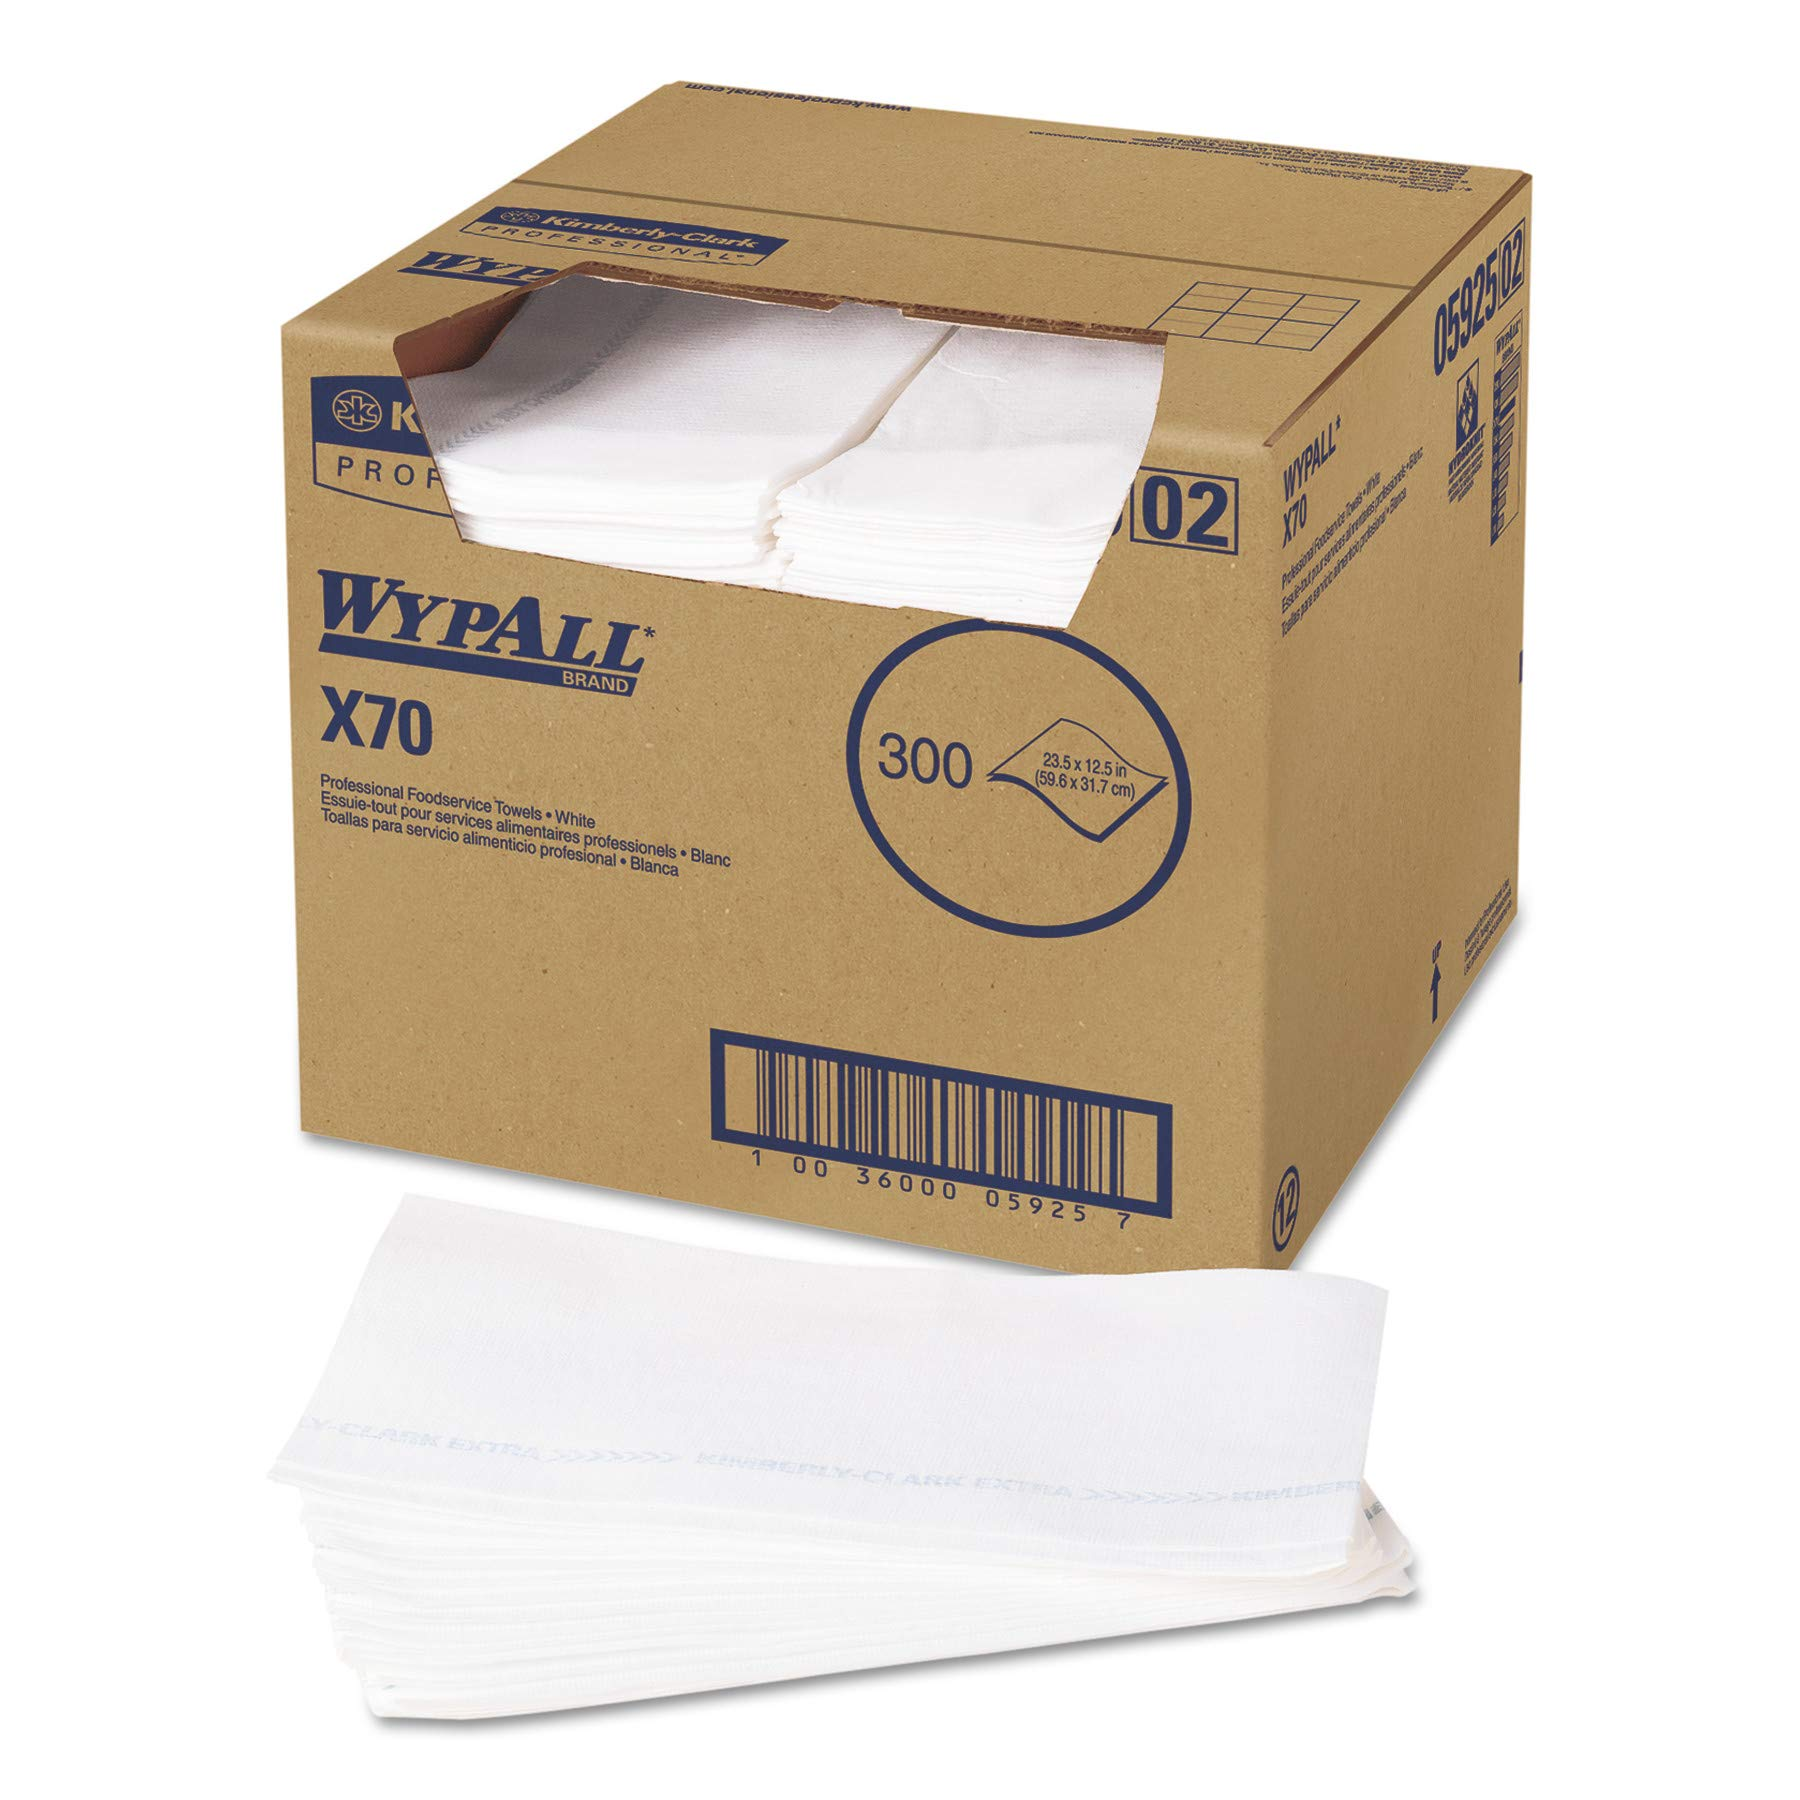 WypAll 05925 X70 Wipers, Kimfresh Antimicrobial, 12 1/2 x 23 1/2, White (Box of 300) by Wypall